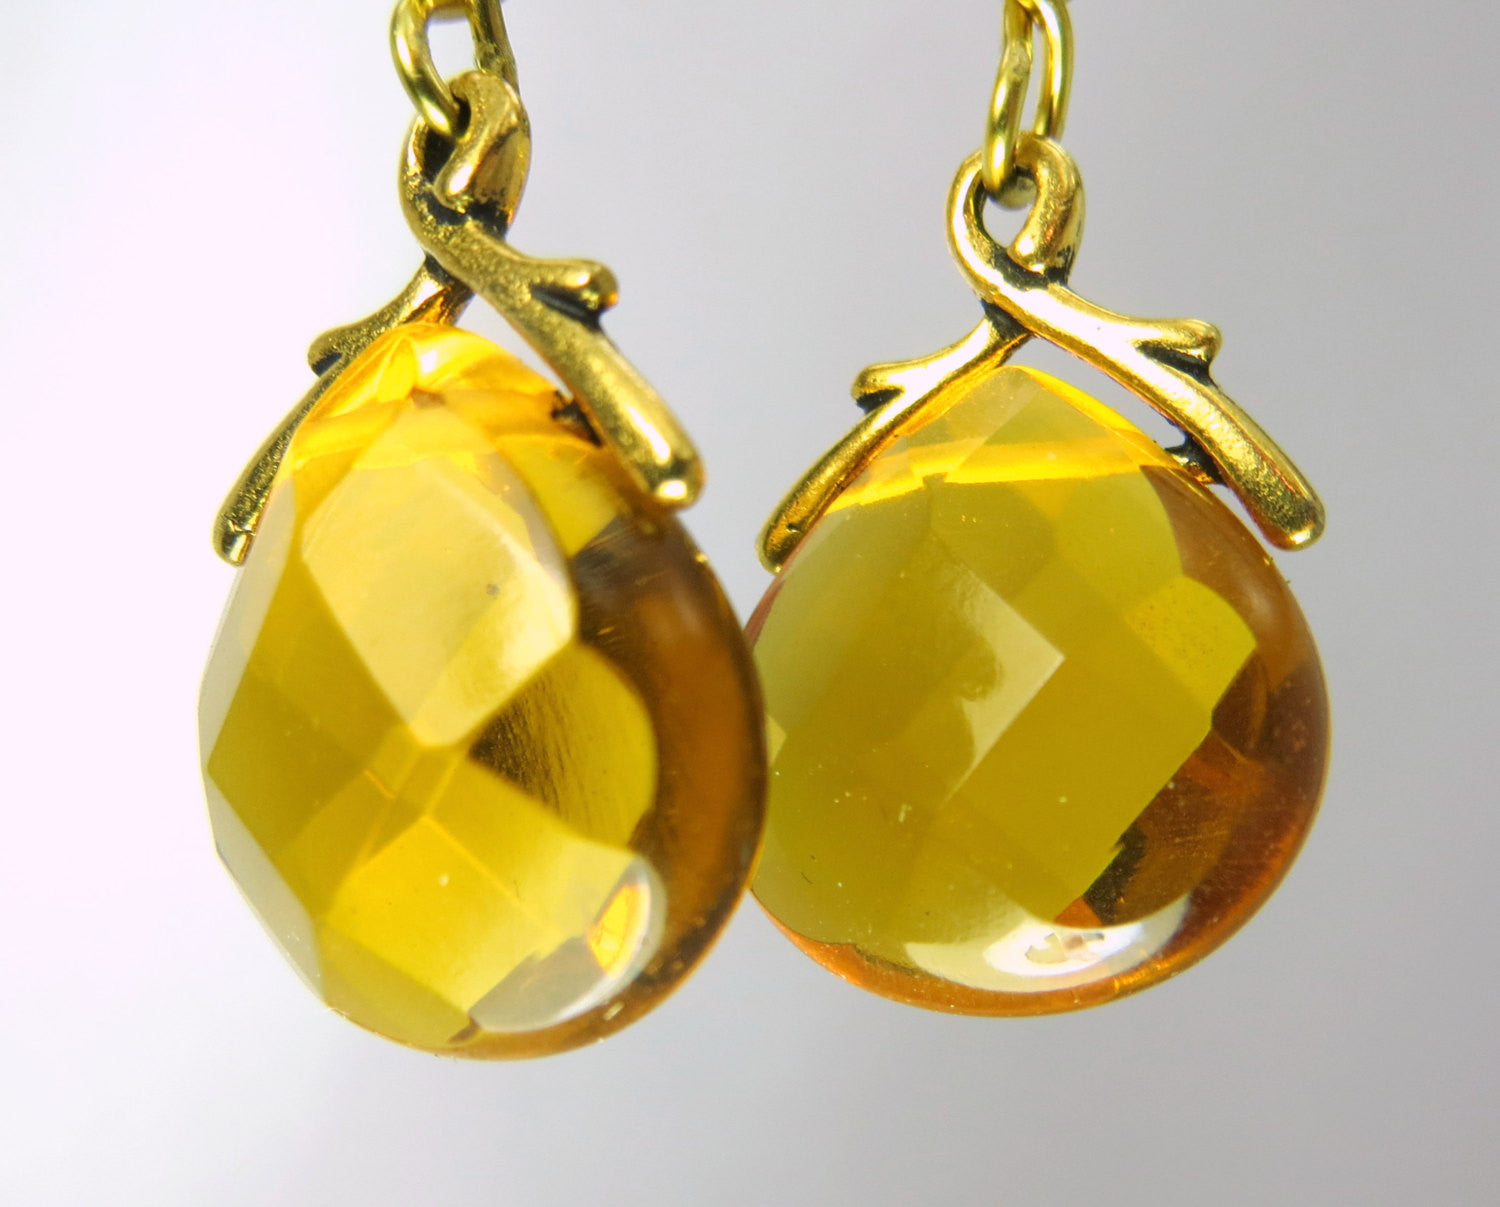 Gold Faceted Briolette Quartz Drops Earrings on 22k Gold Vermeil wires - Odyssey Creations